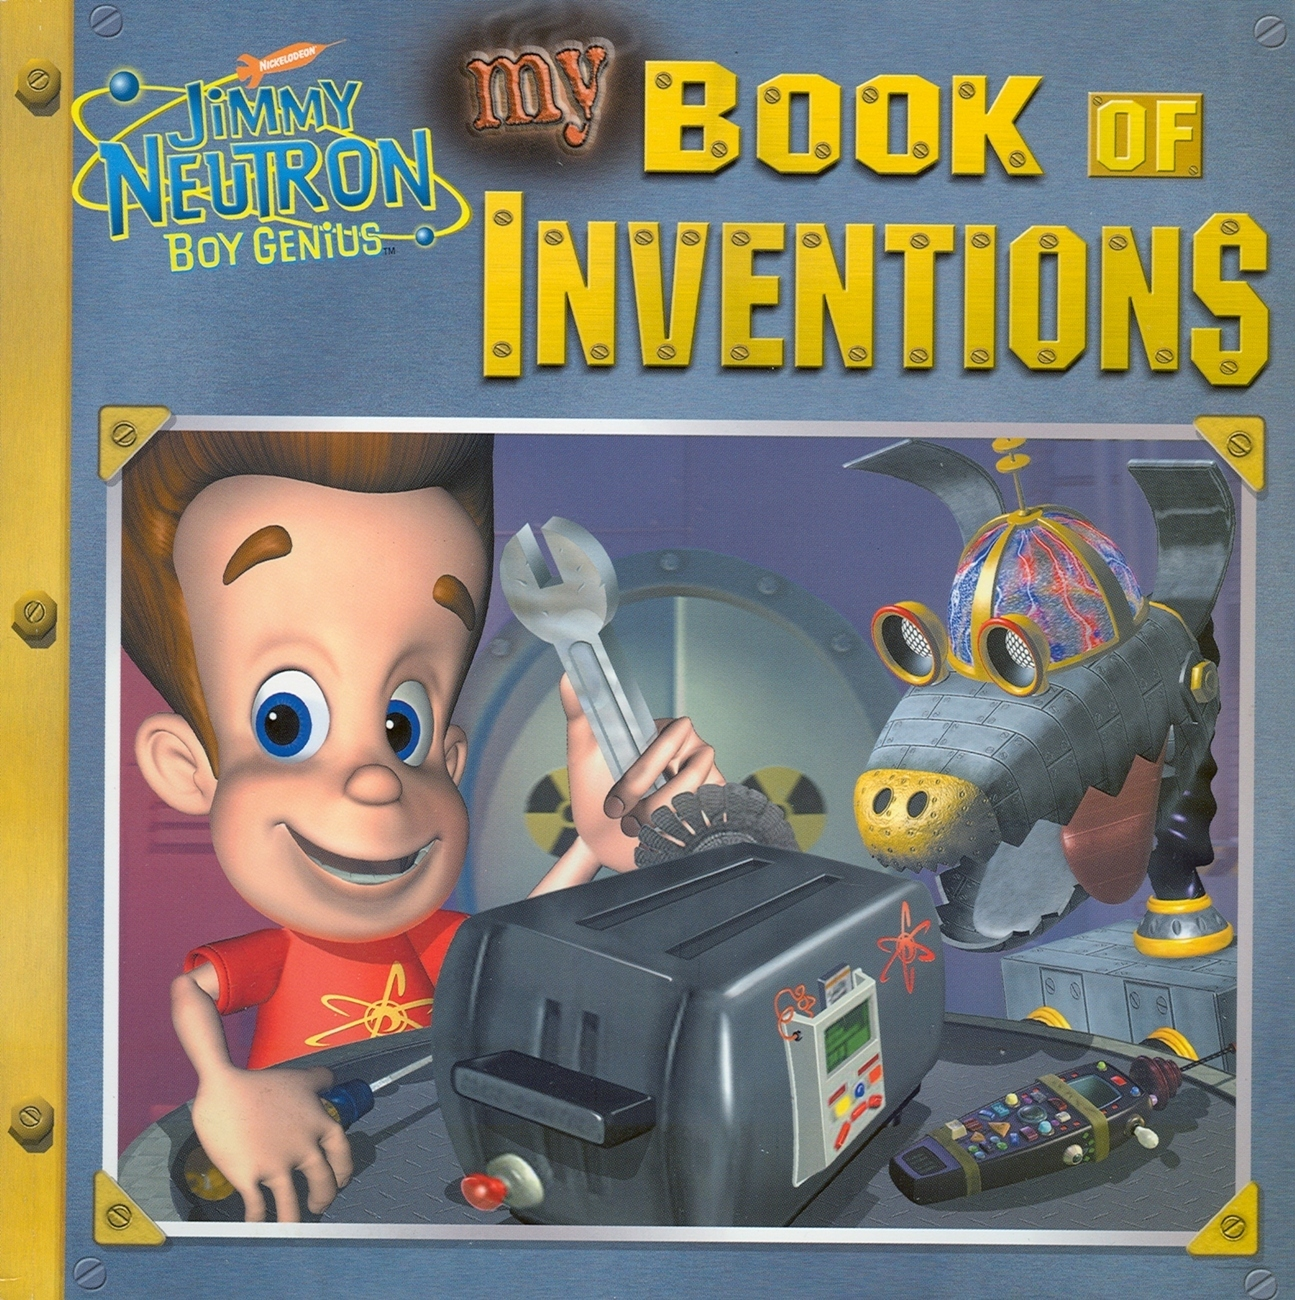 Book of inventions2